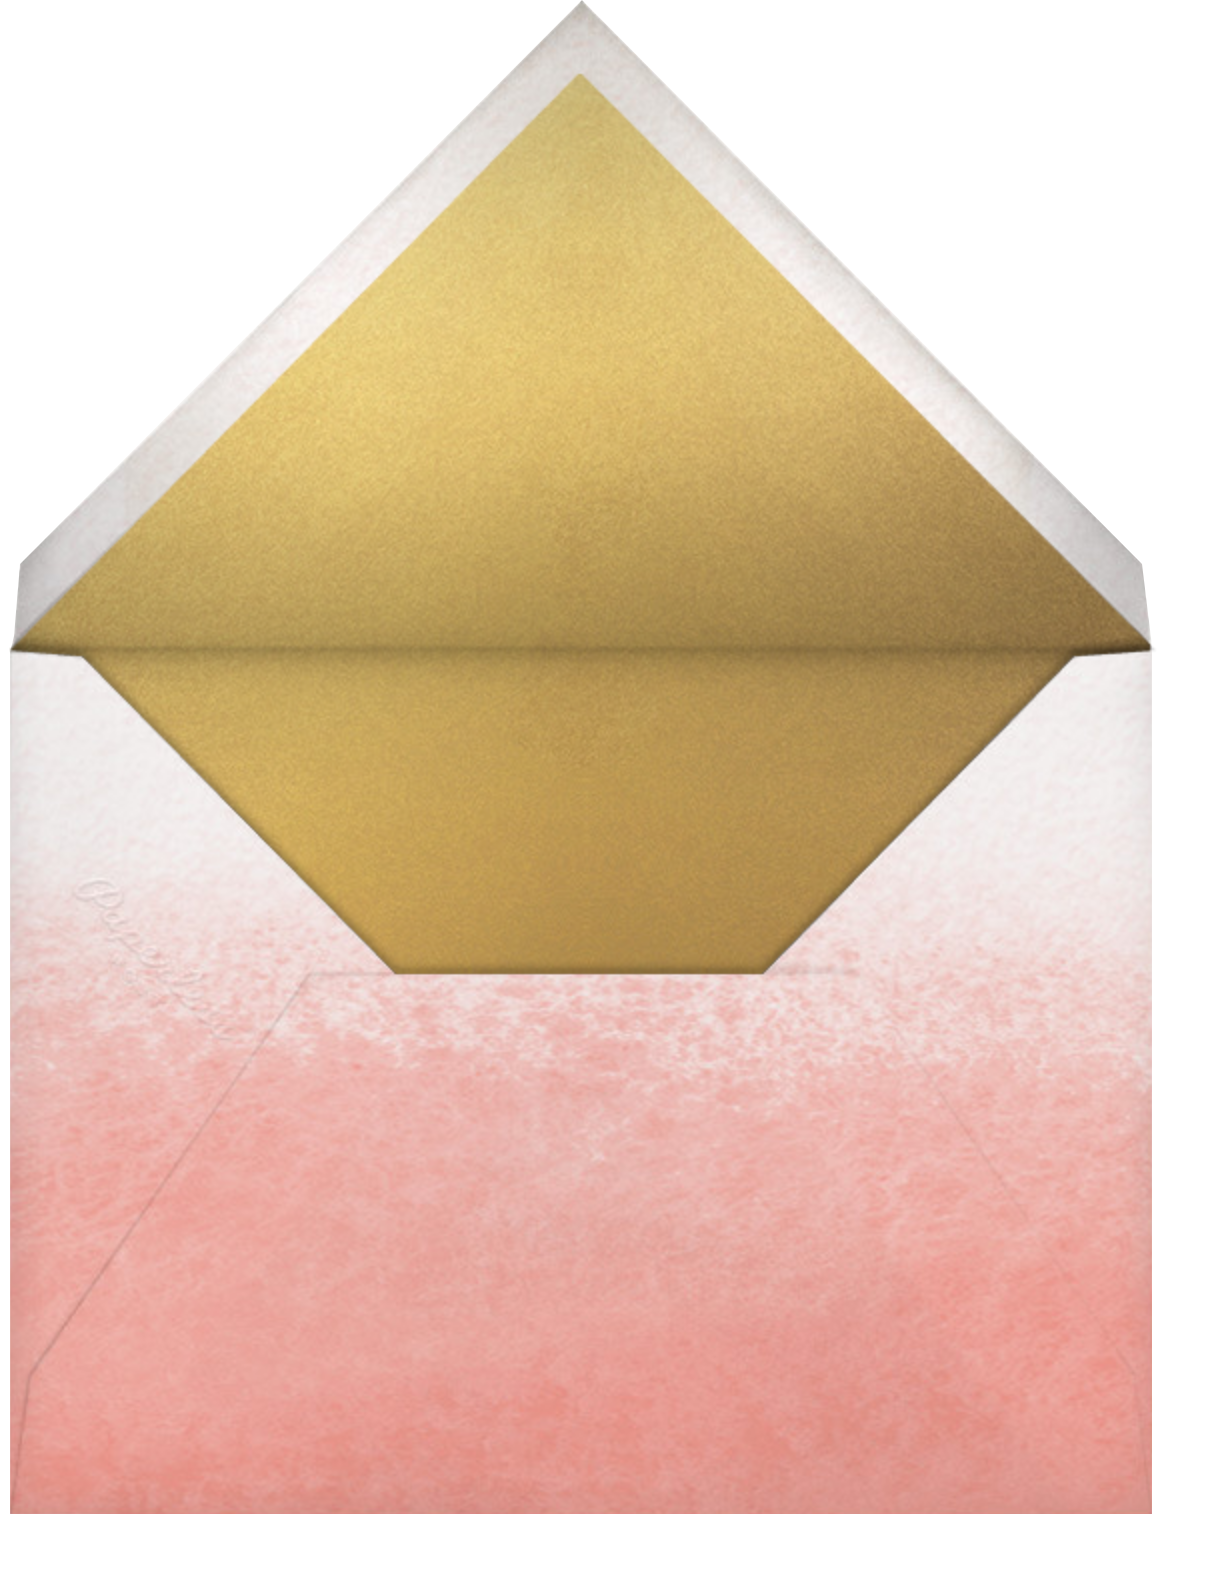 Heart Diagram - Paperless Post - Love cards - envelope back